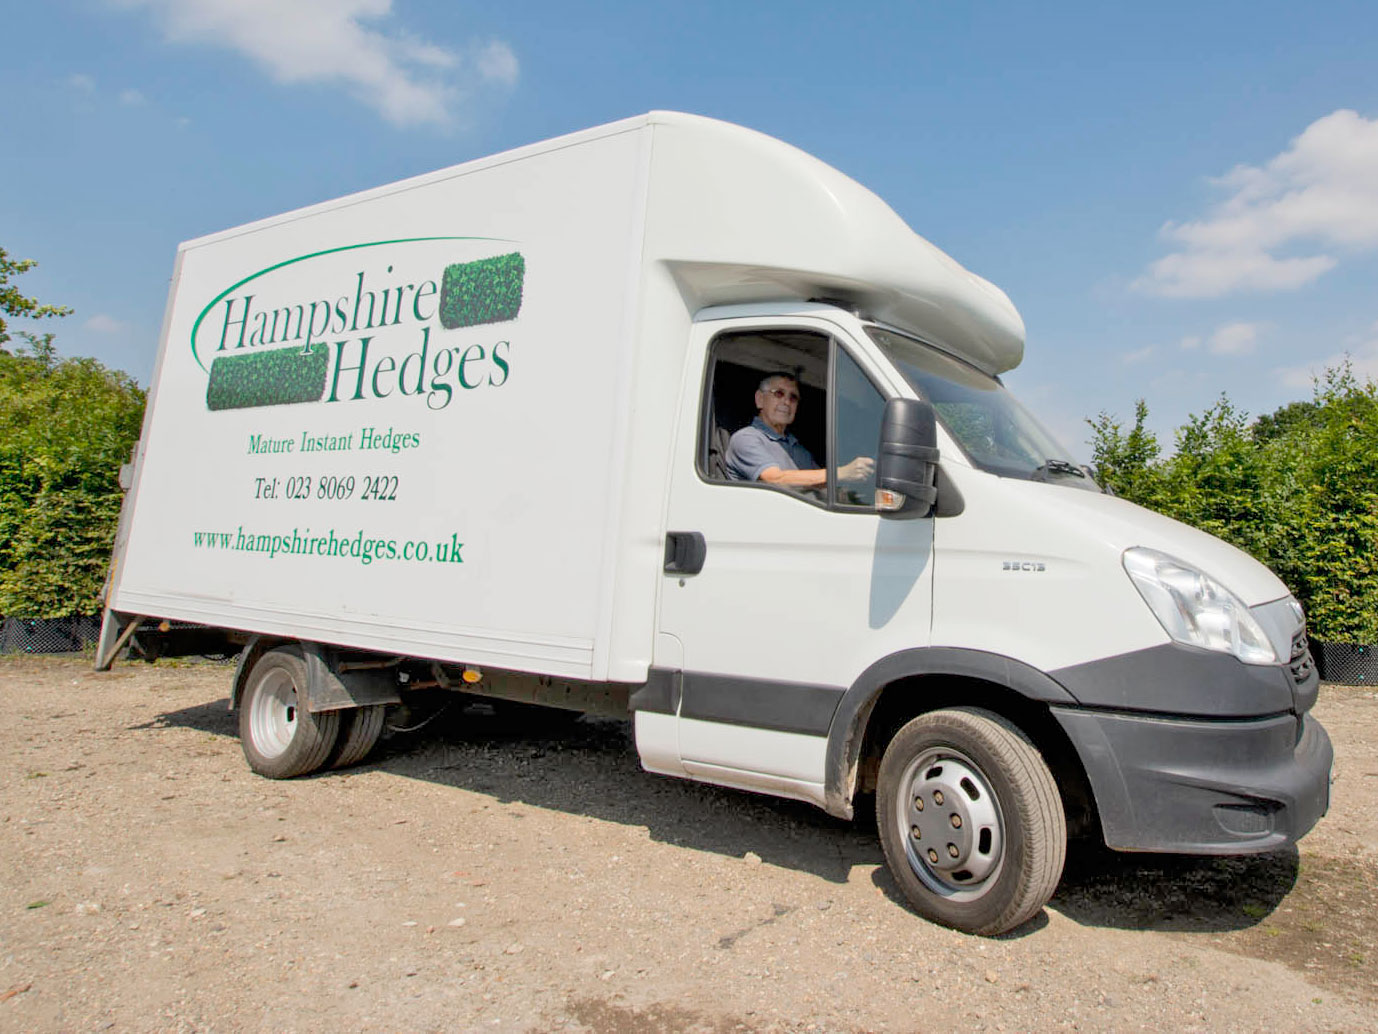 Hampshire Hedges delivery van